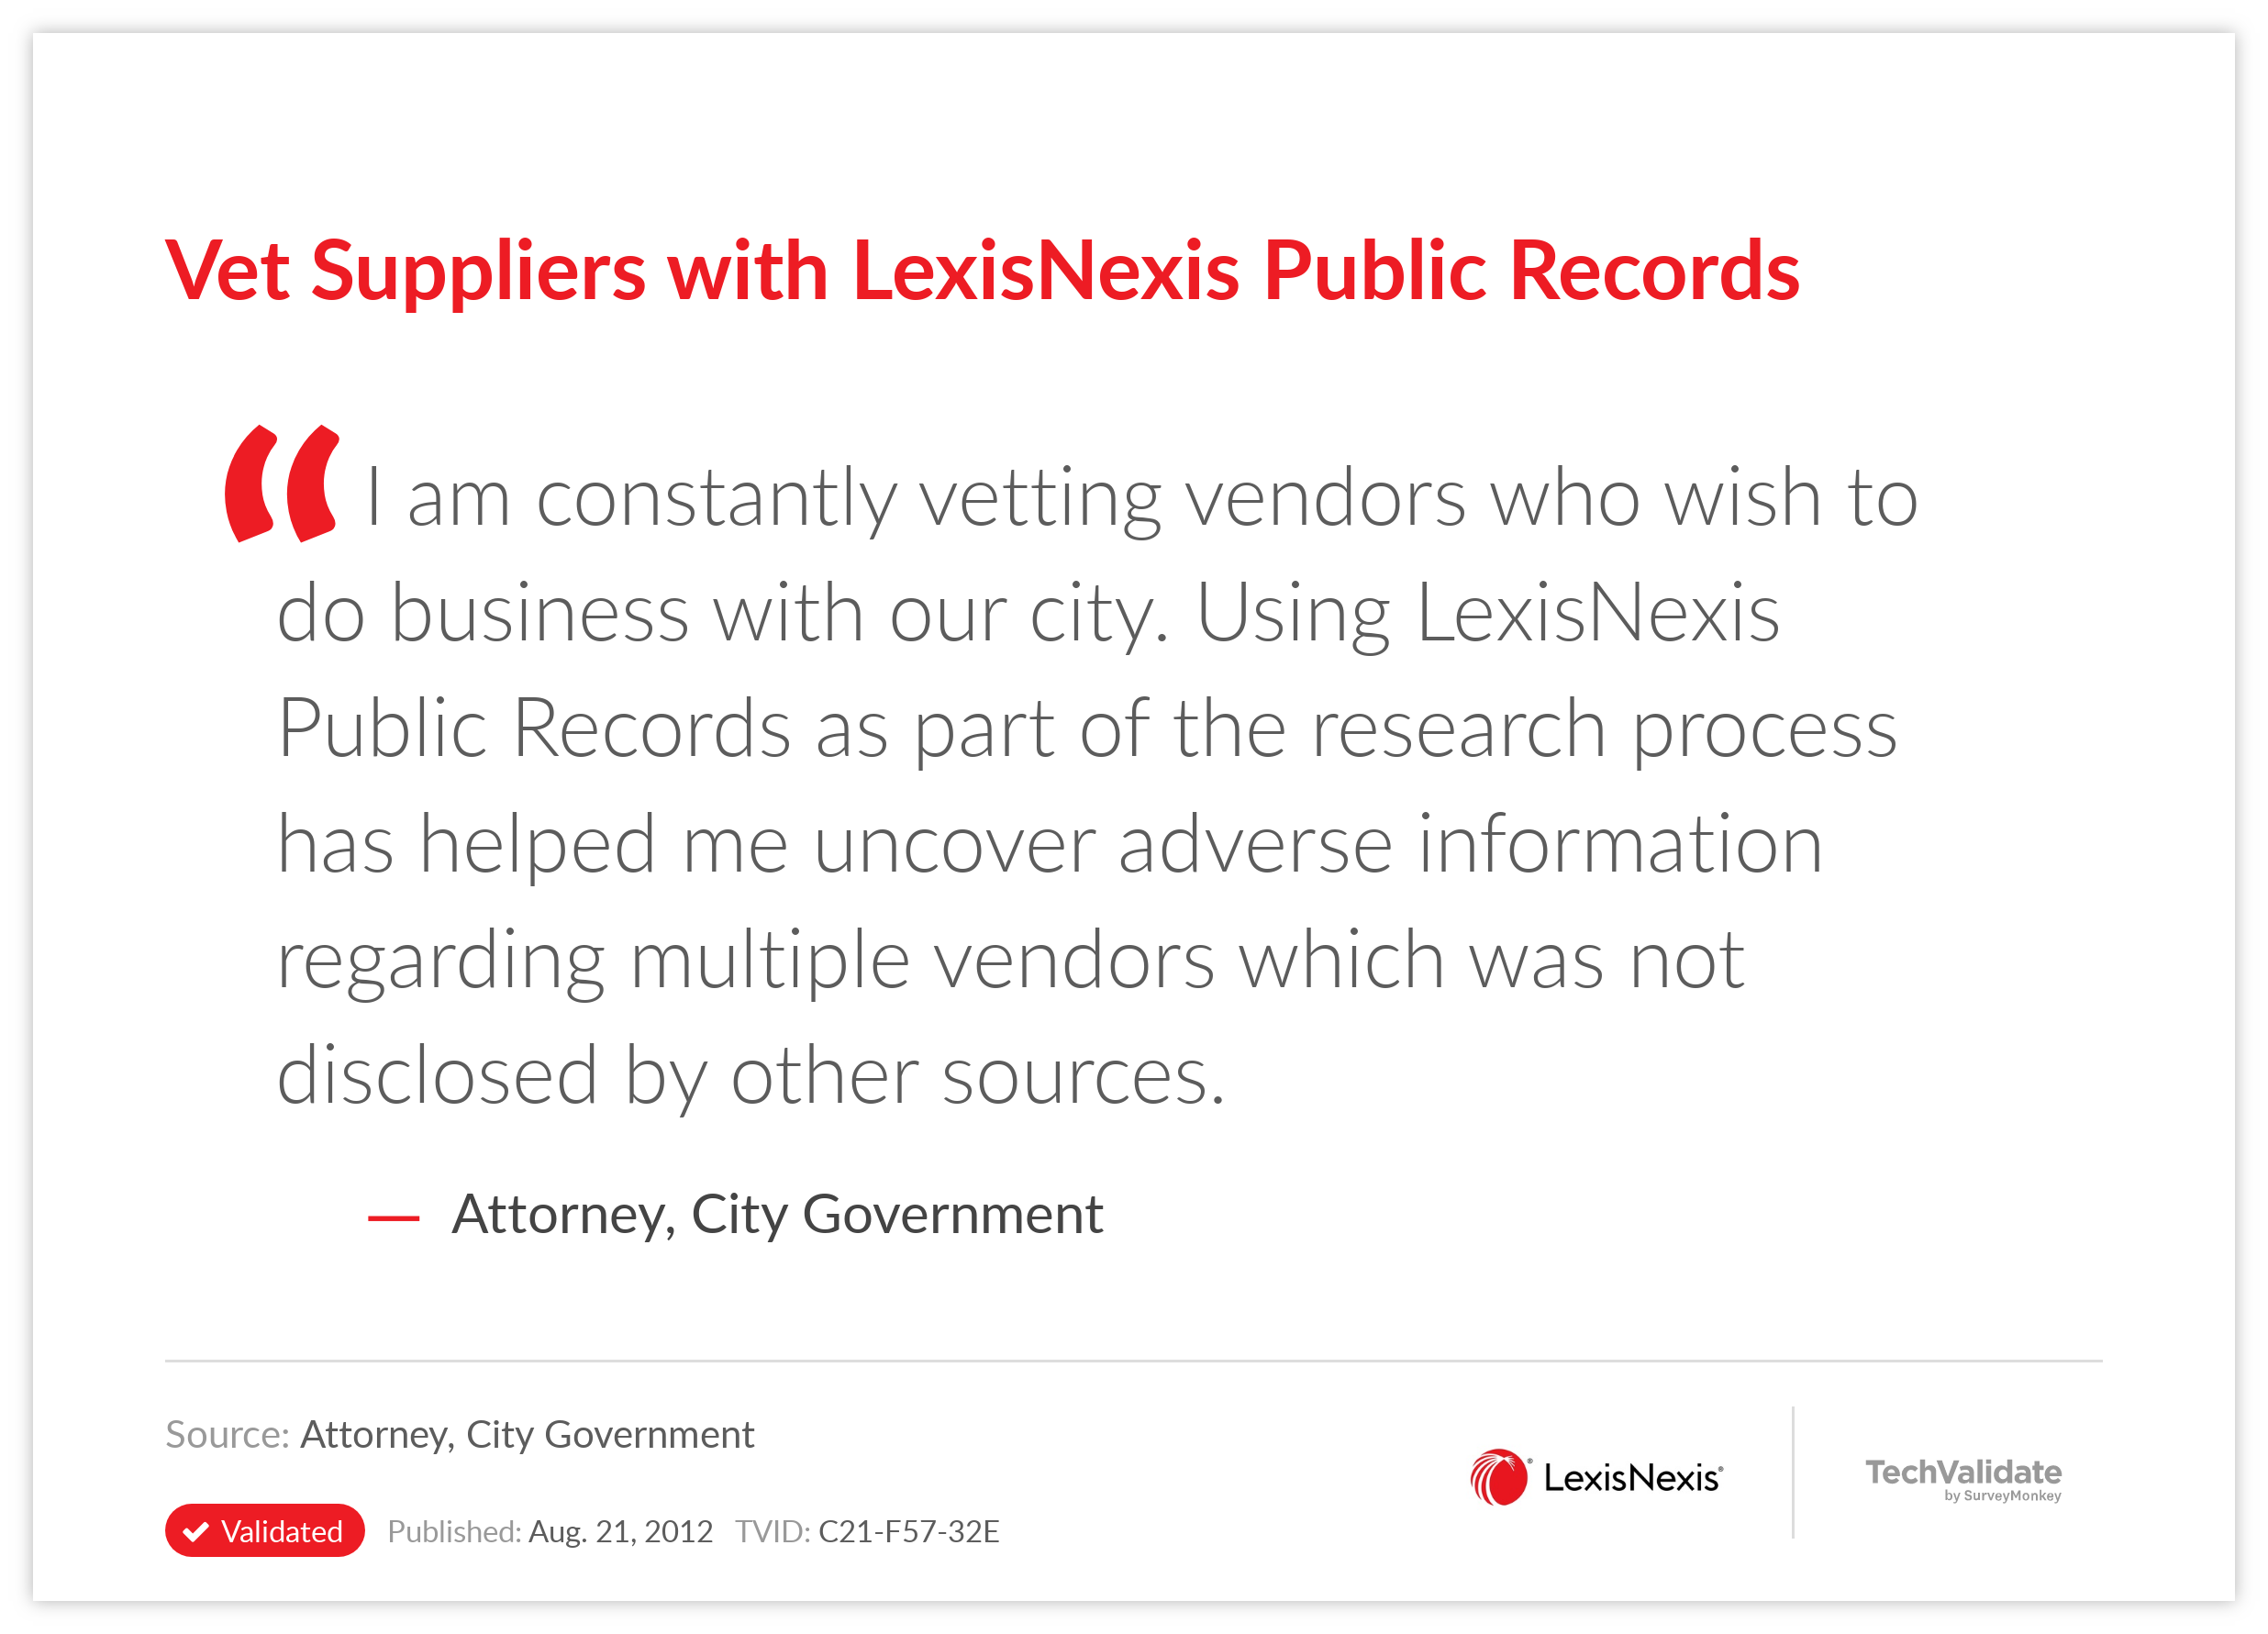 Vet Suppliers with LexisNexis Public Records